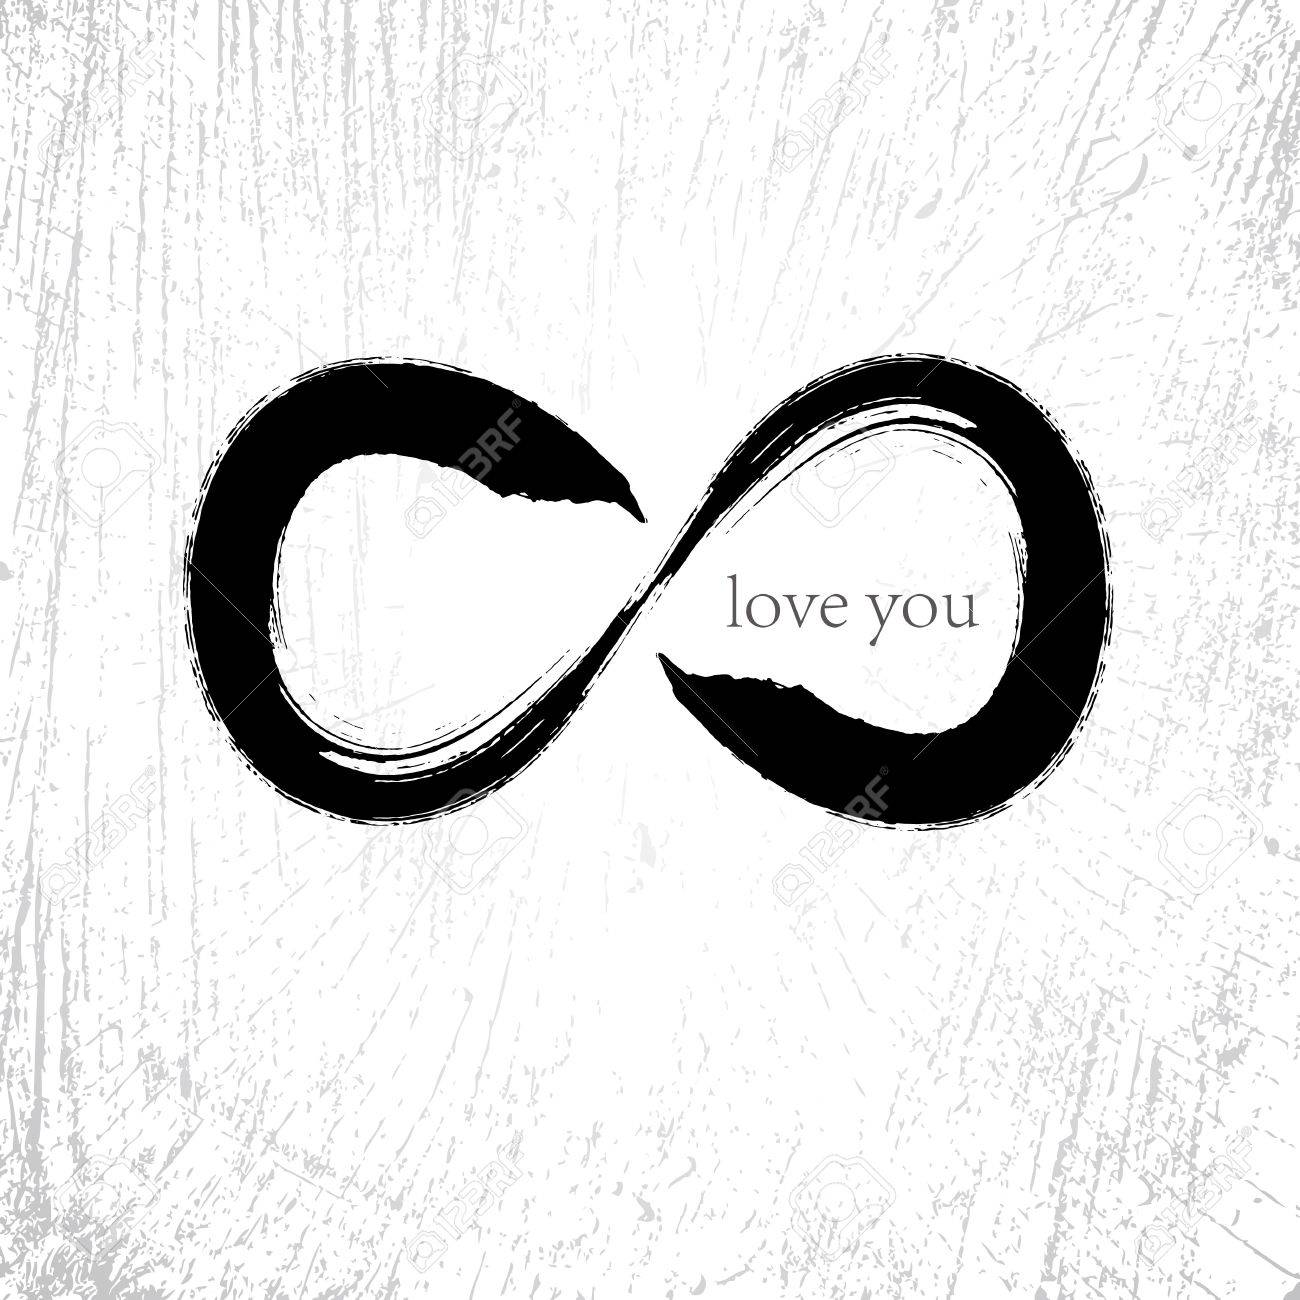 Vector  Infinity love symbol with grunge brushwork style Stock Vector - 18752887